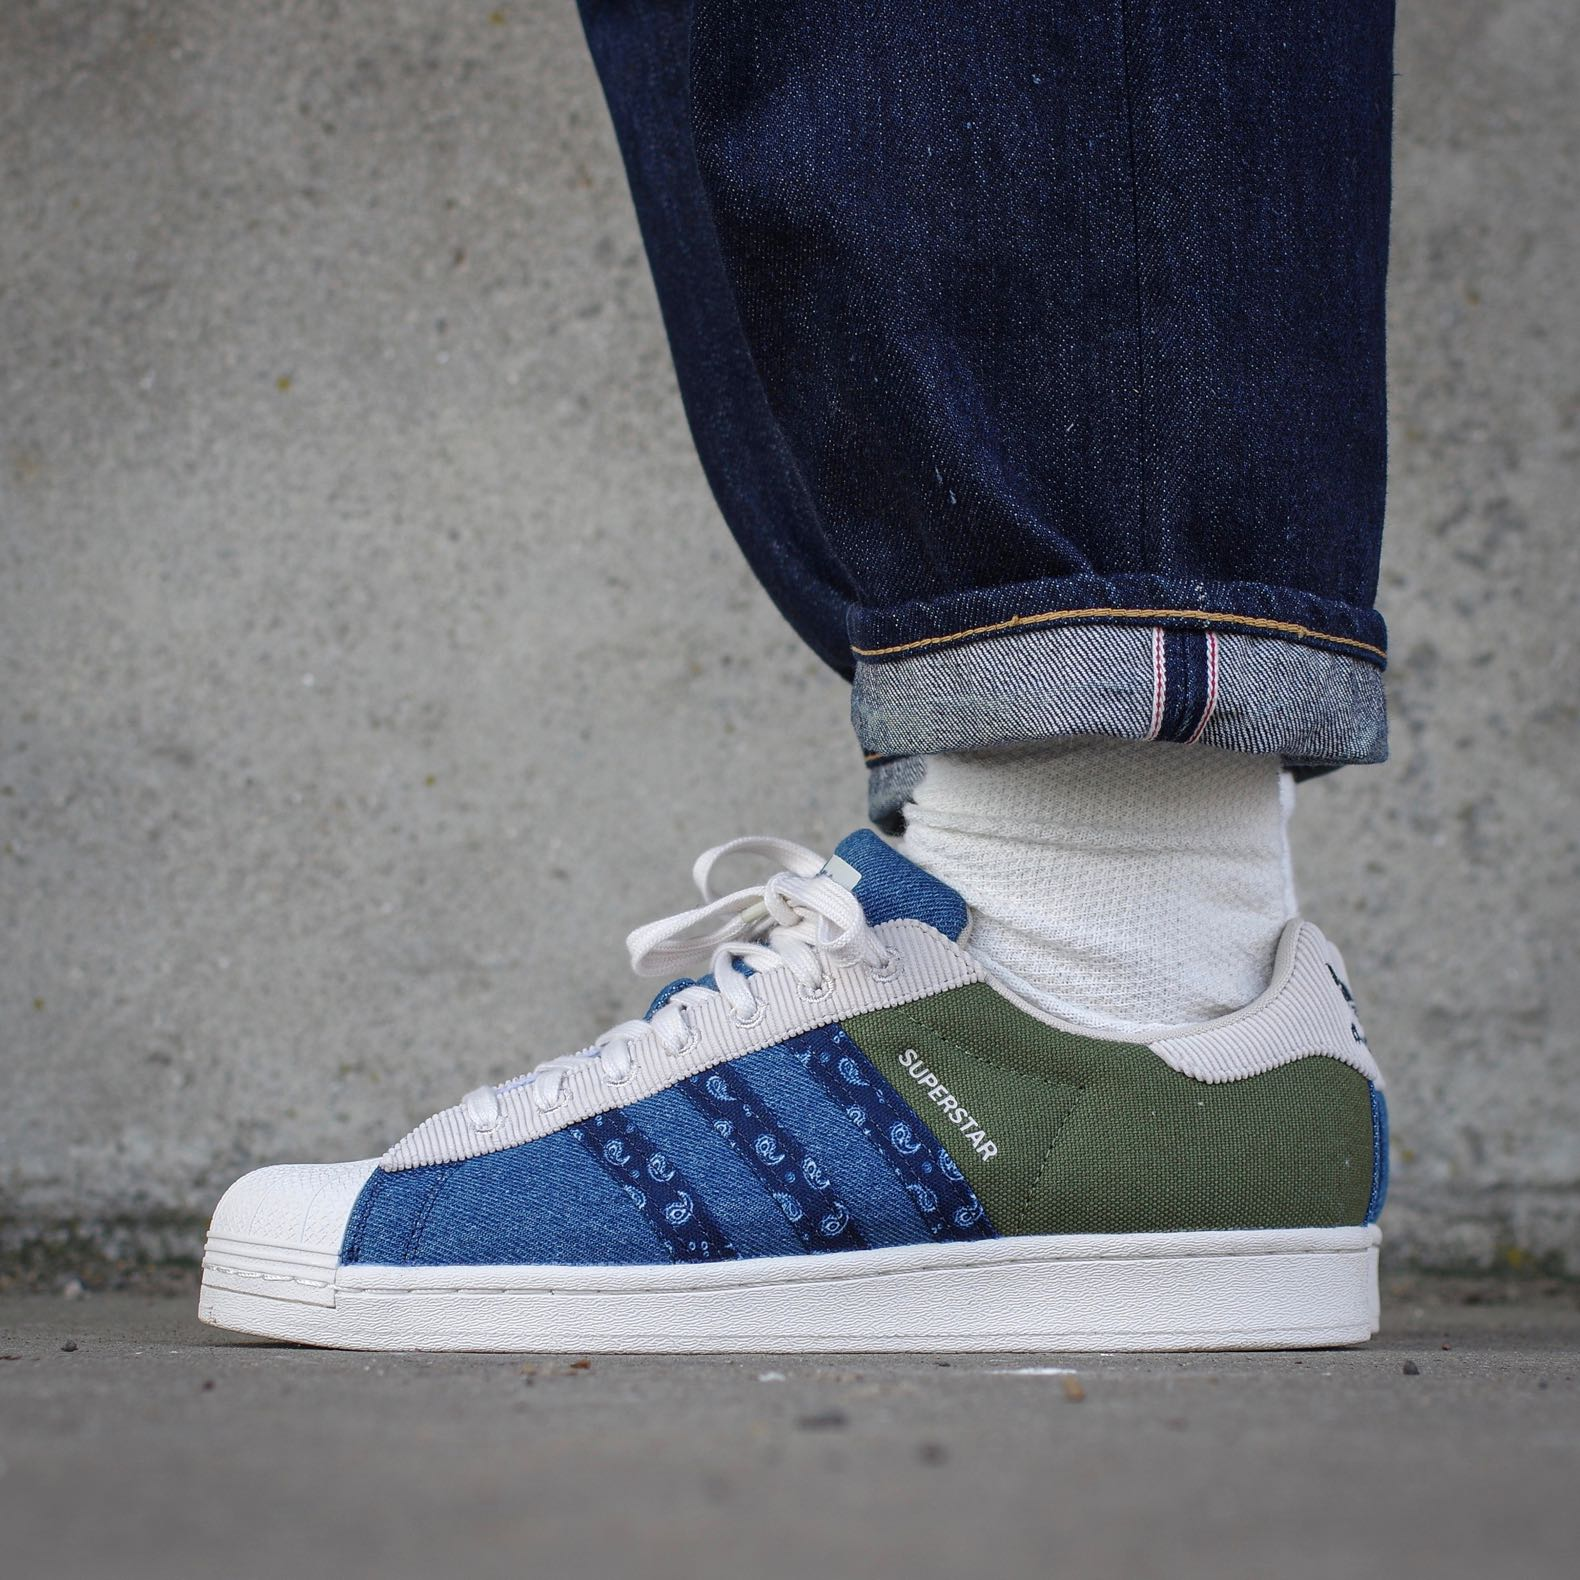 borasification-conseil-comment-porter-sneakers-adidas-superstar - 3